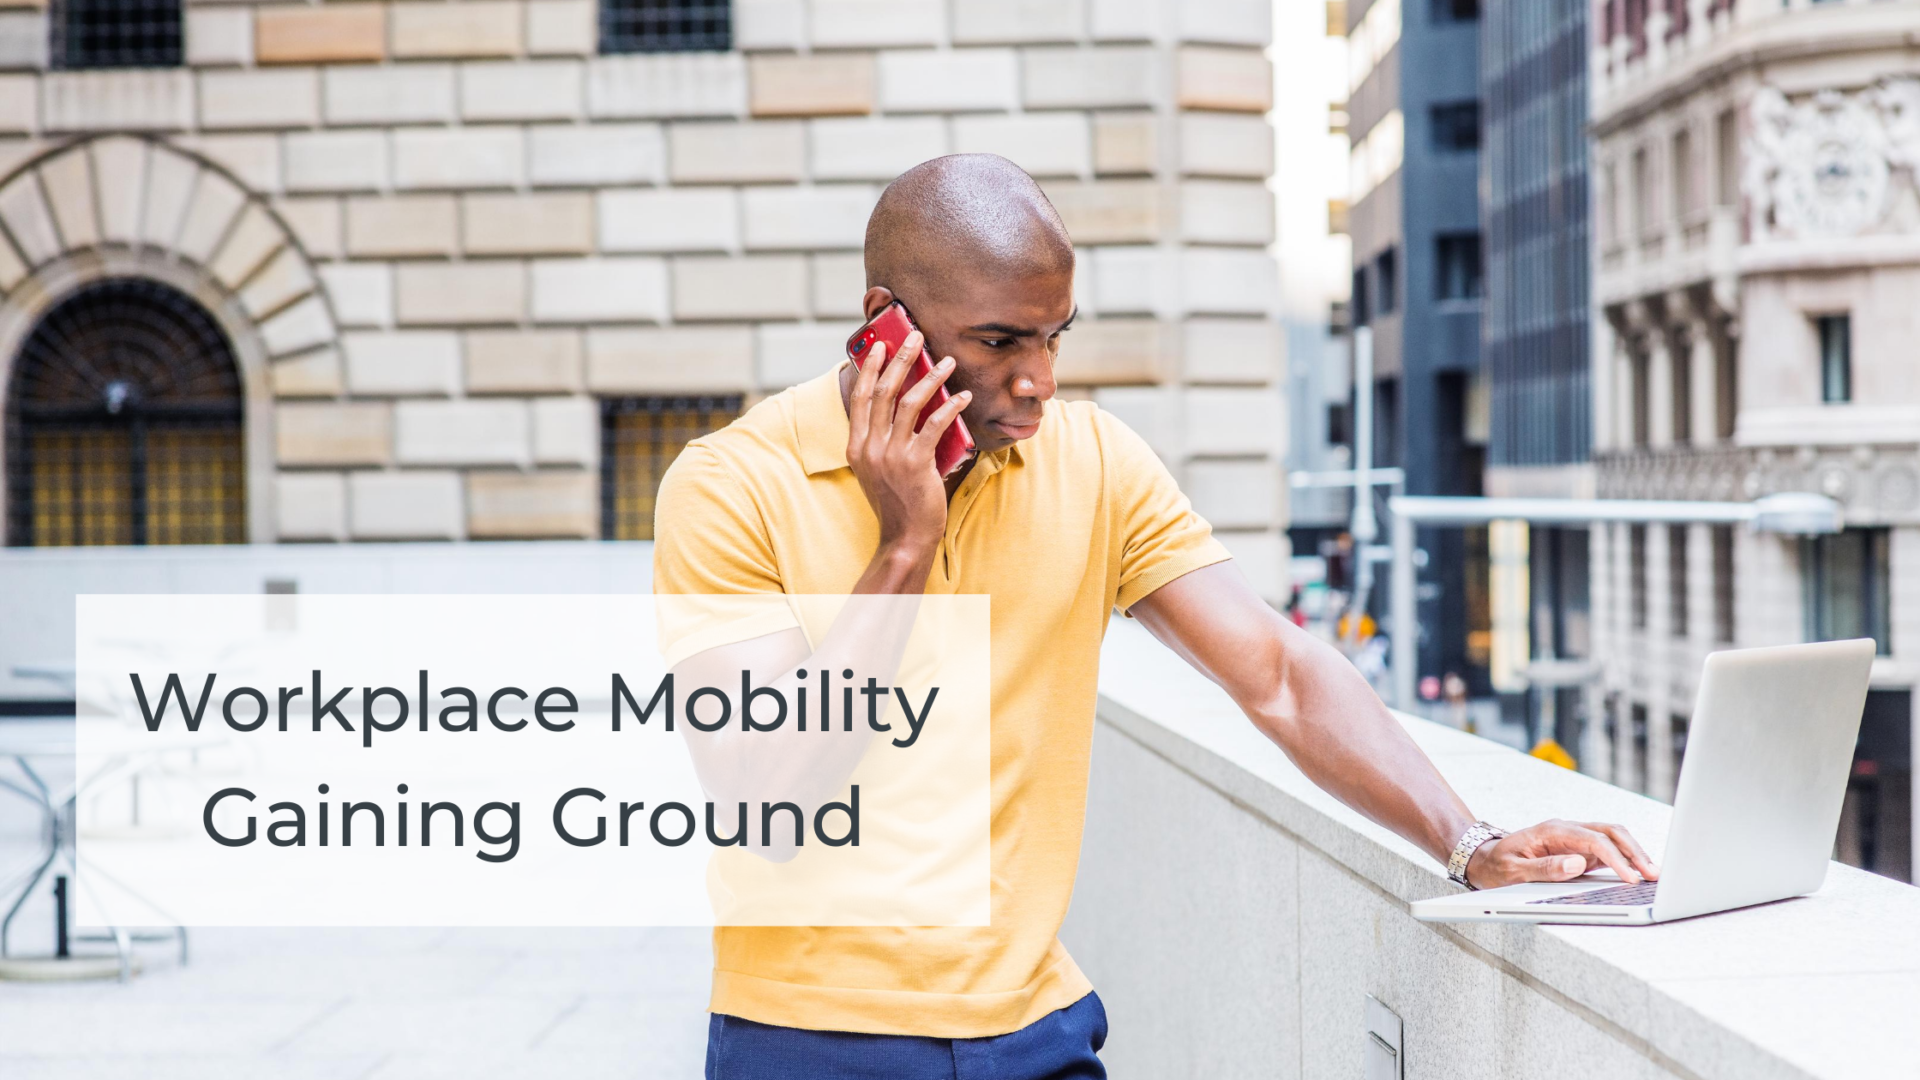 workplace mobility gaining ground